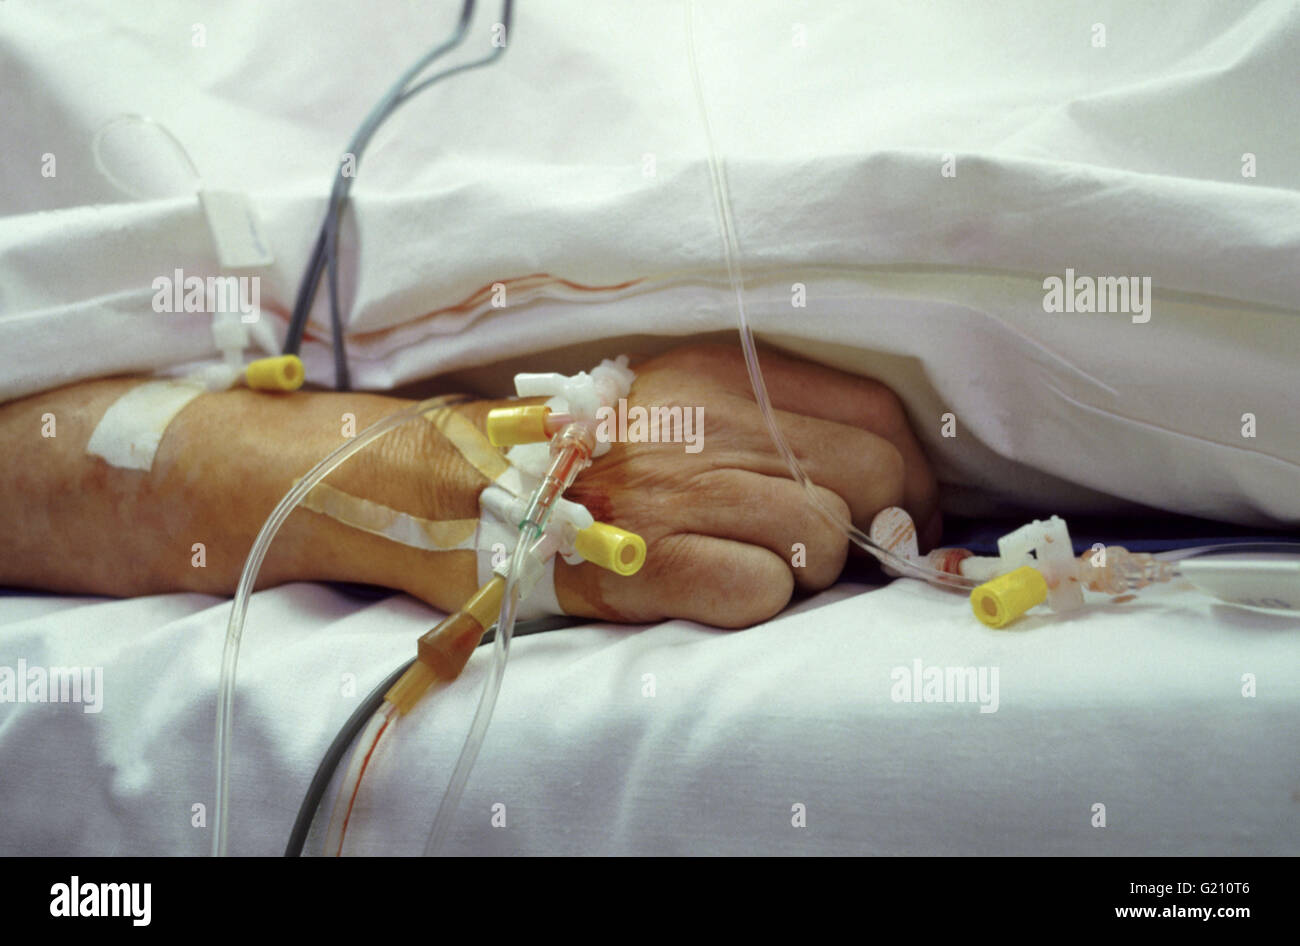 A patient's hand with intravenous hookups in Intensive Care Unit - Stock Image